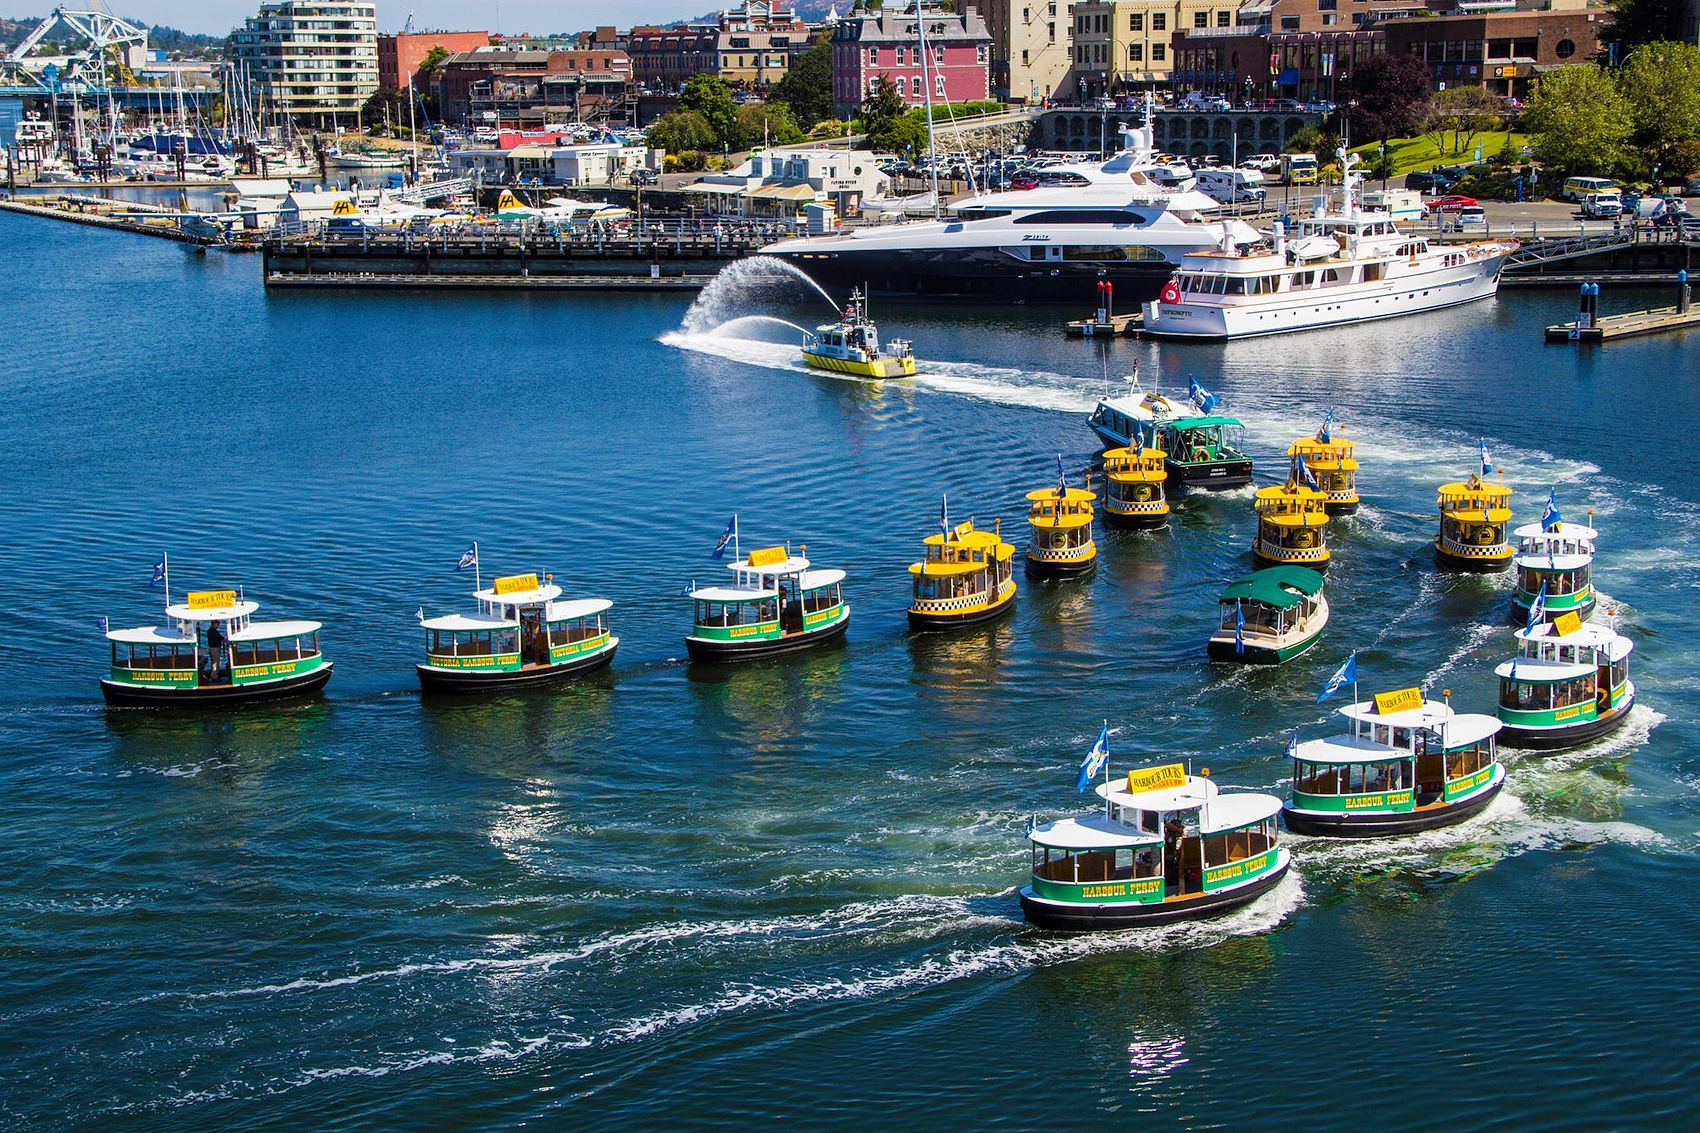 Water Taxis in Victoria, Canada